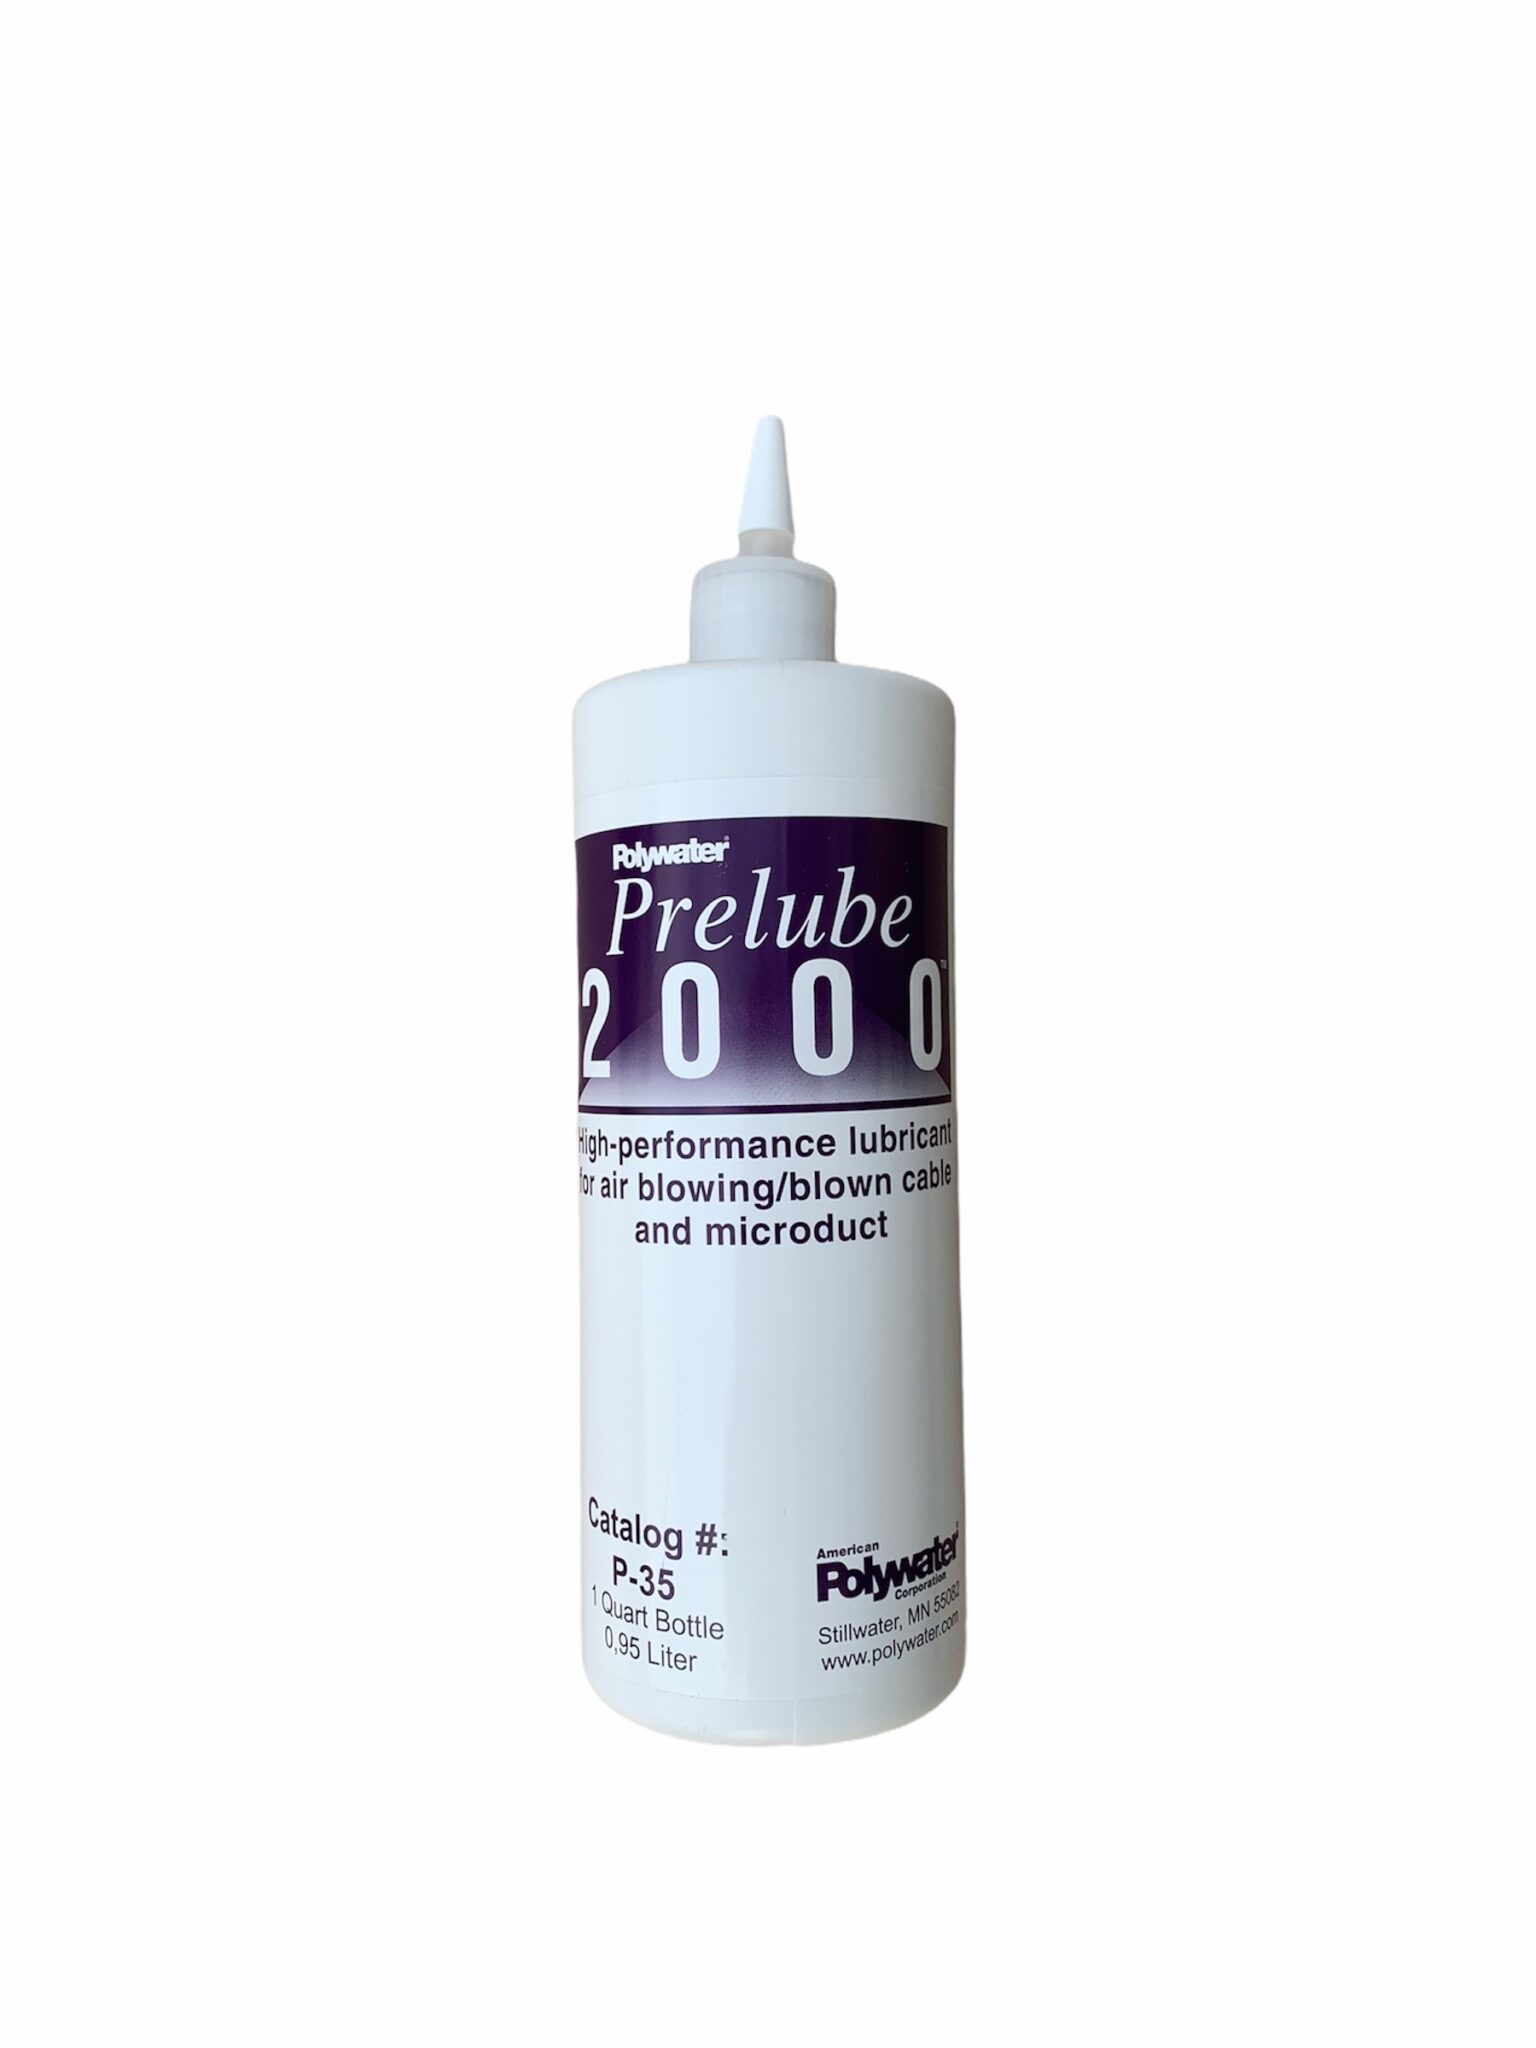 Polywater Prelube 2000 Cable Lubricant 0.95 litre